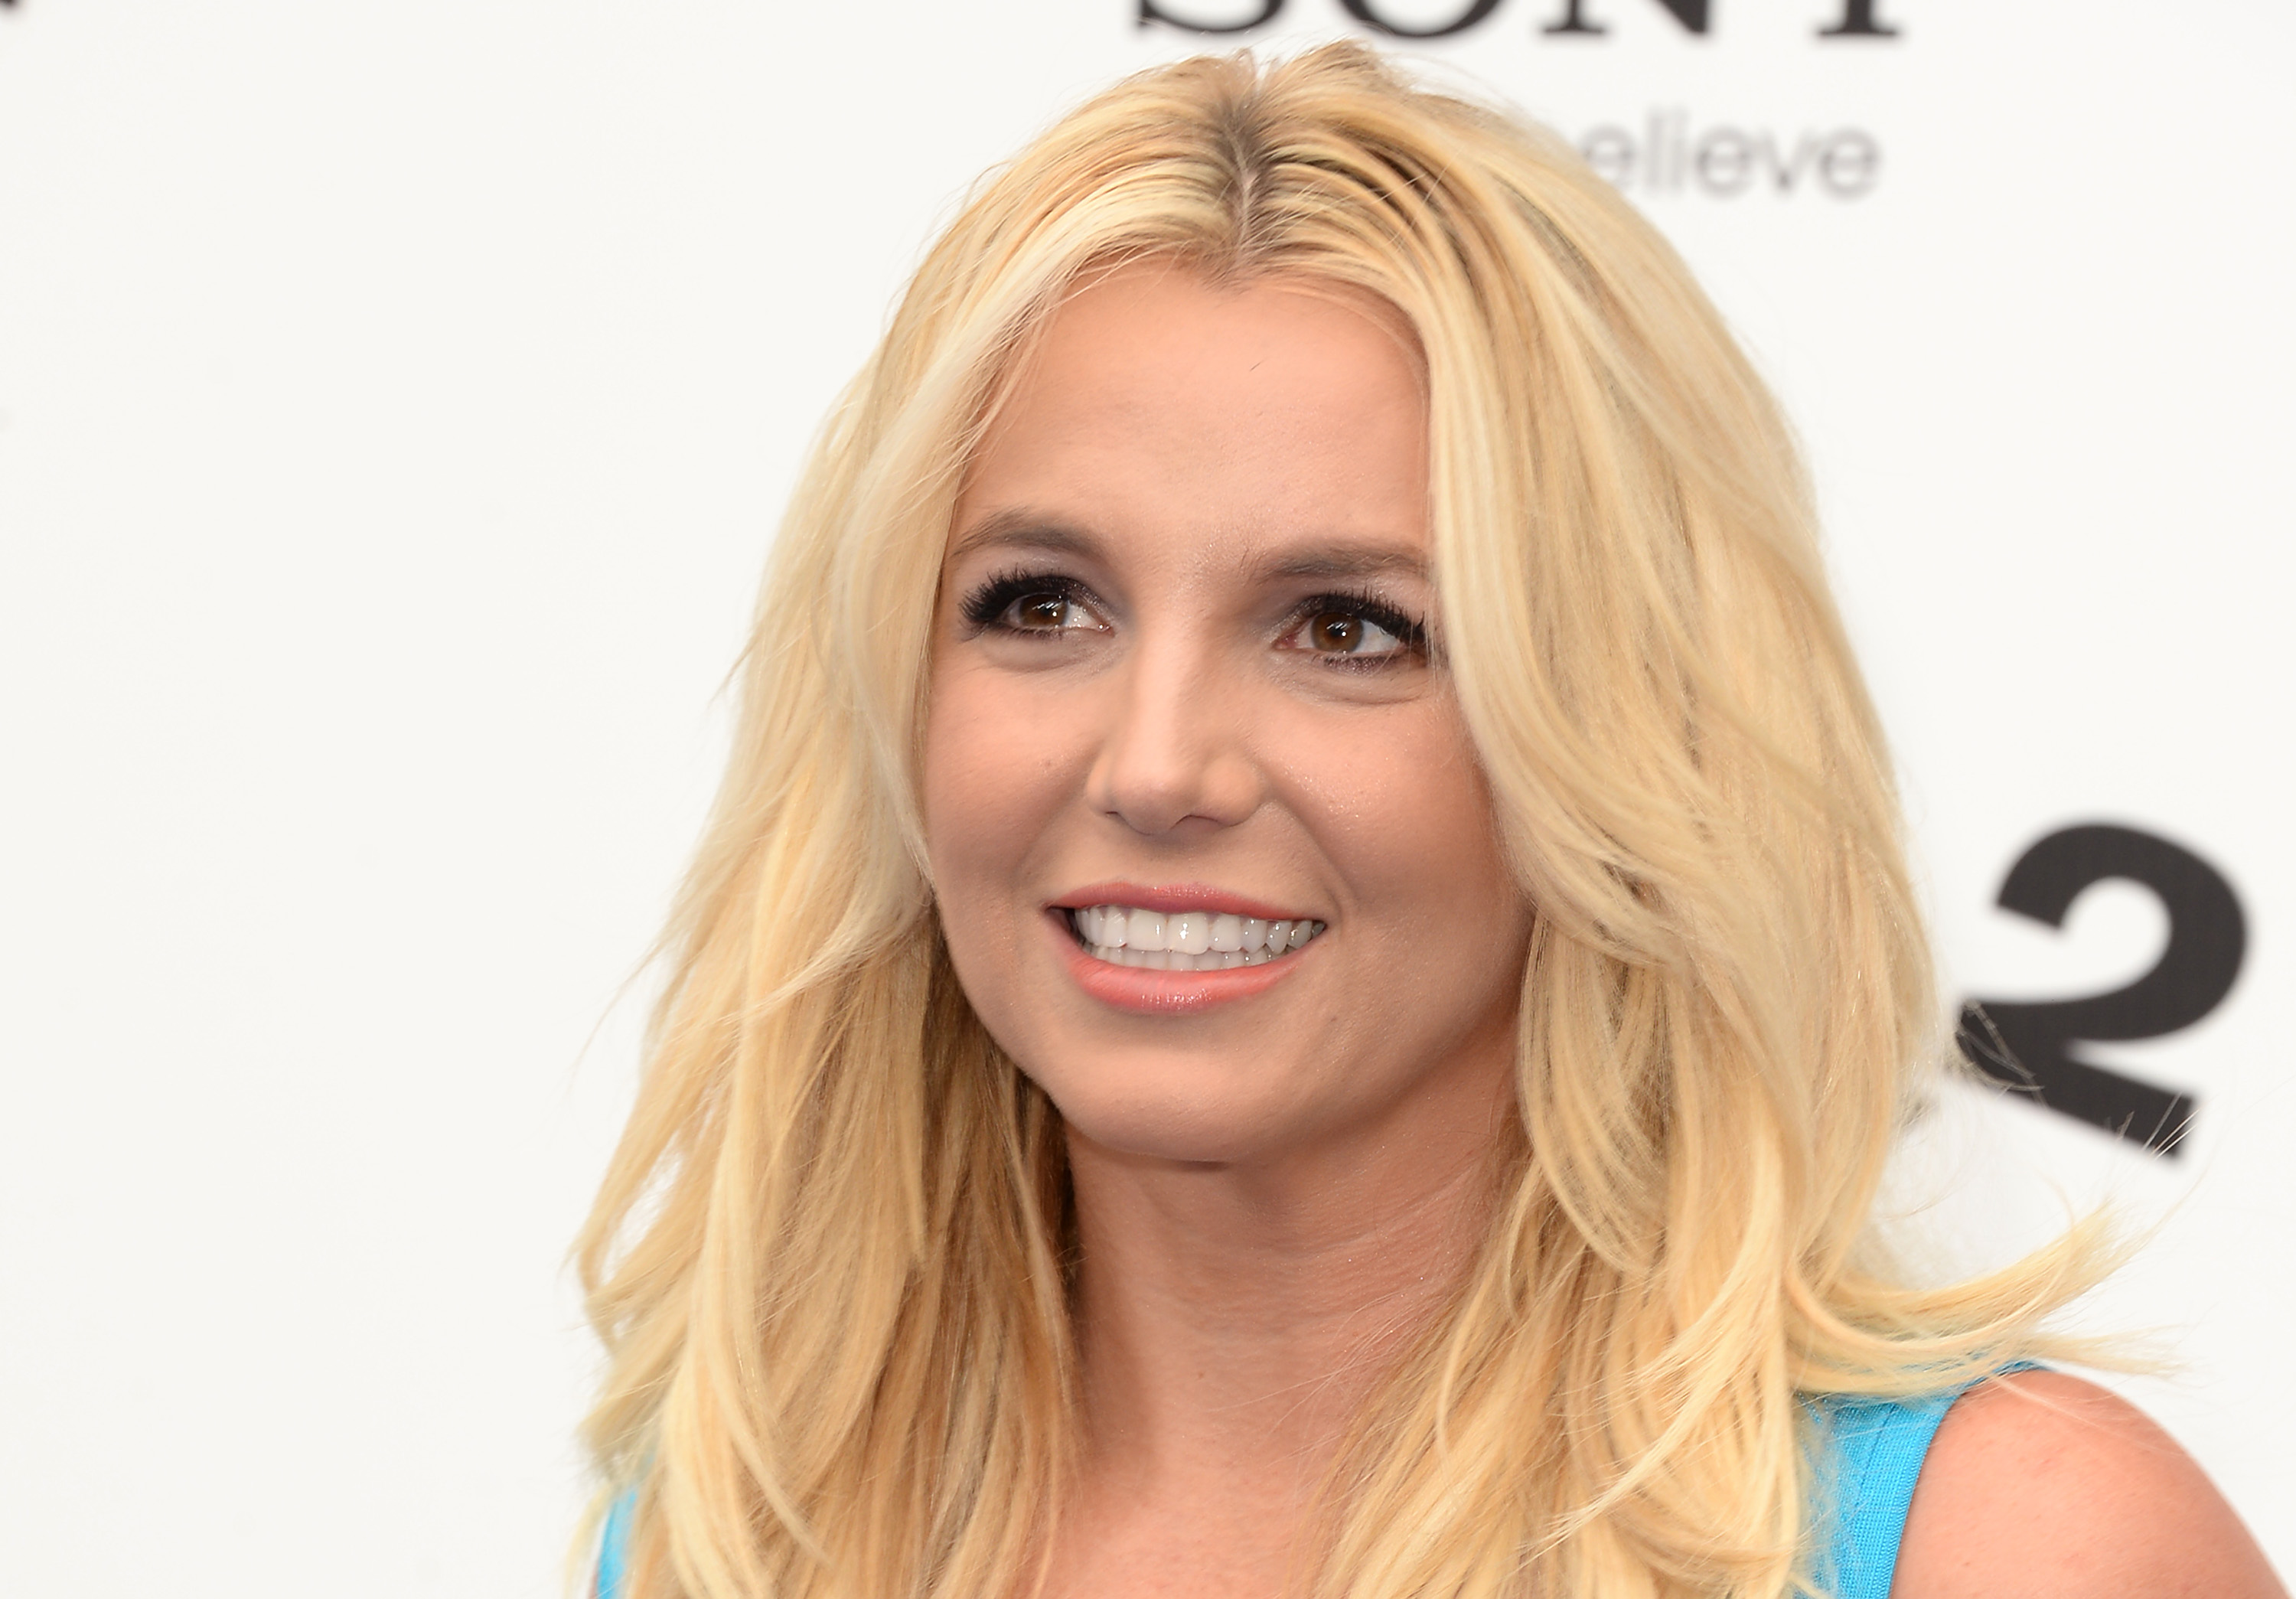 Watch Britney spears richer than youd think video